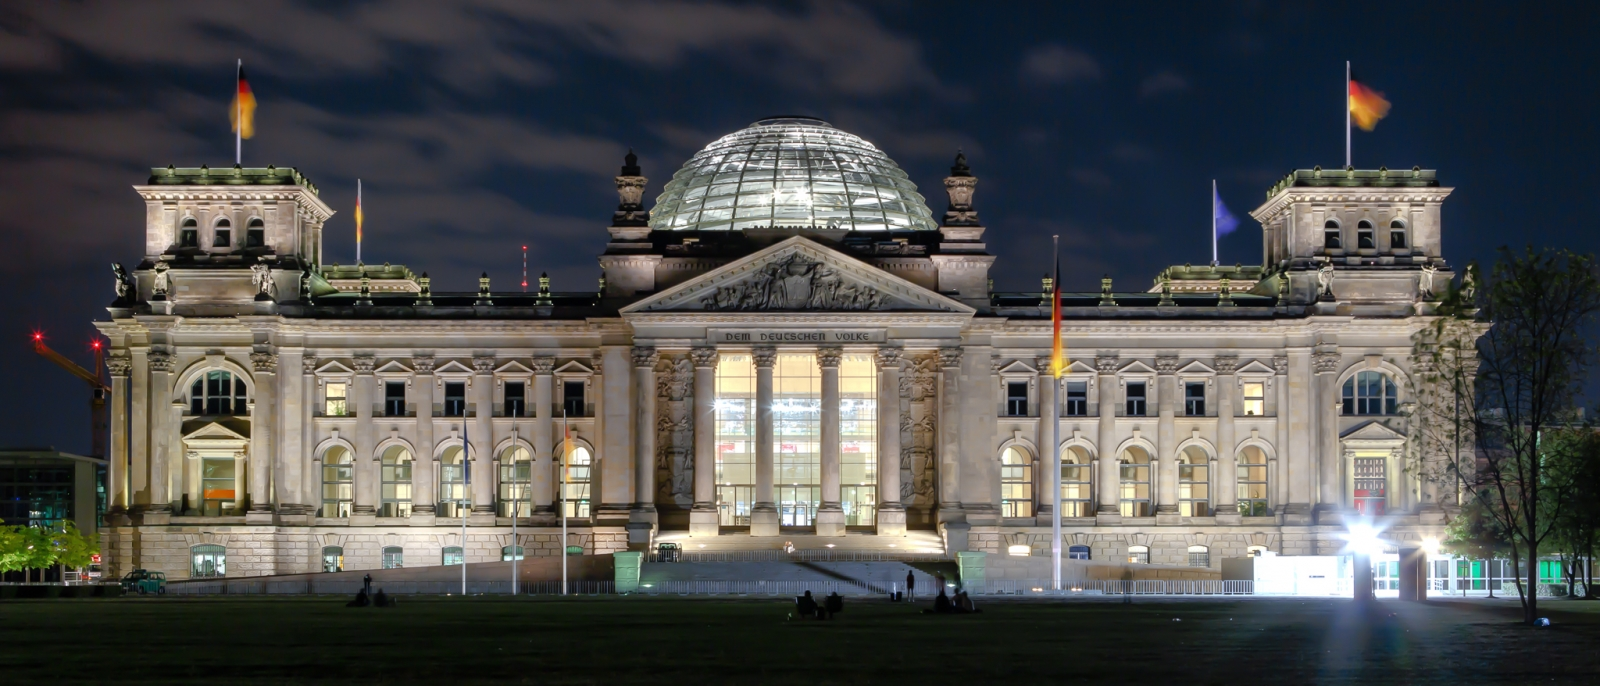 Reichstag building in Berlin: description, date of foundation, architect, history and modernity 90